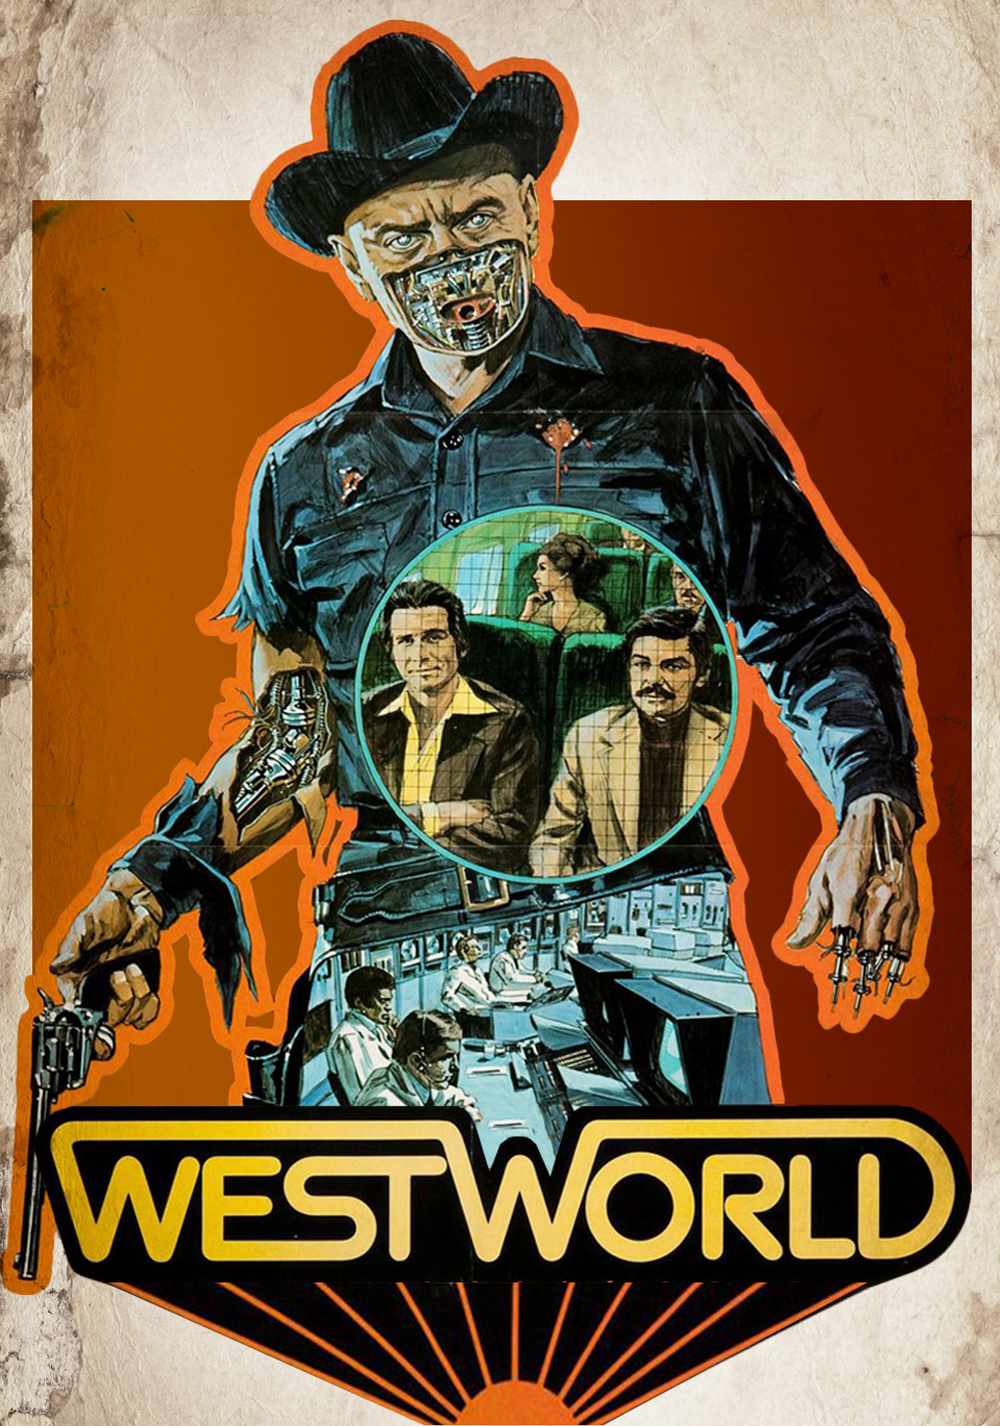 West world movie poster 30x40 for sale